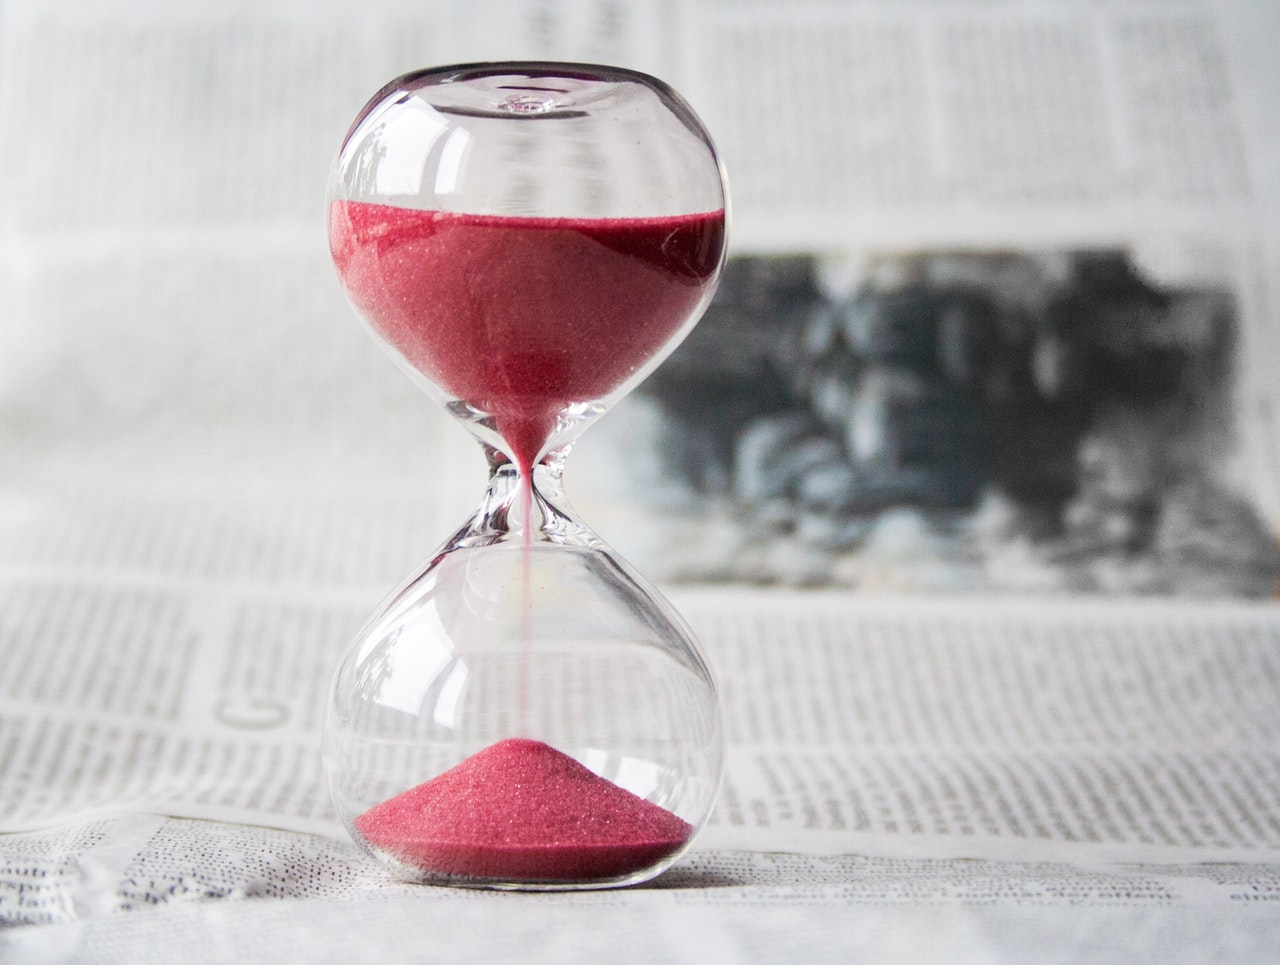 Image of sand timer to illustrate 'countdown'